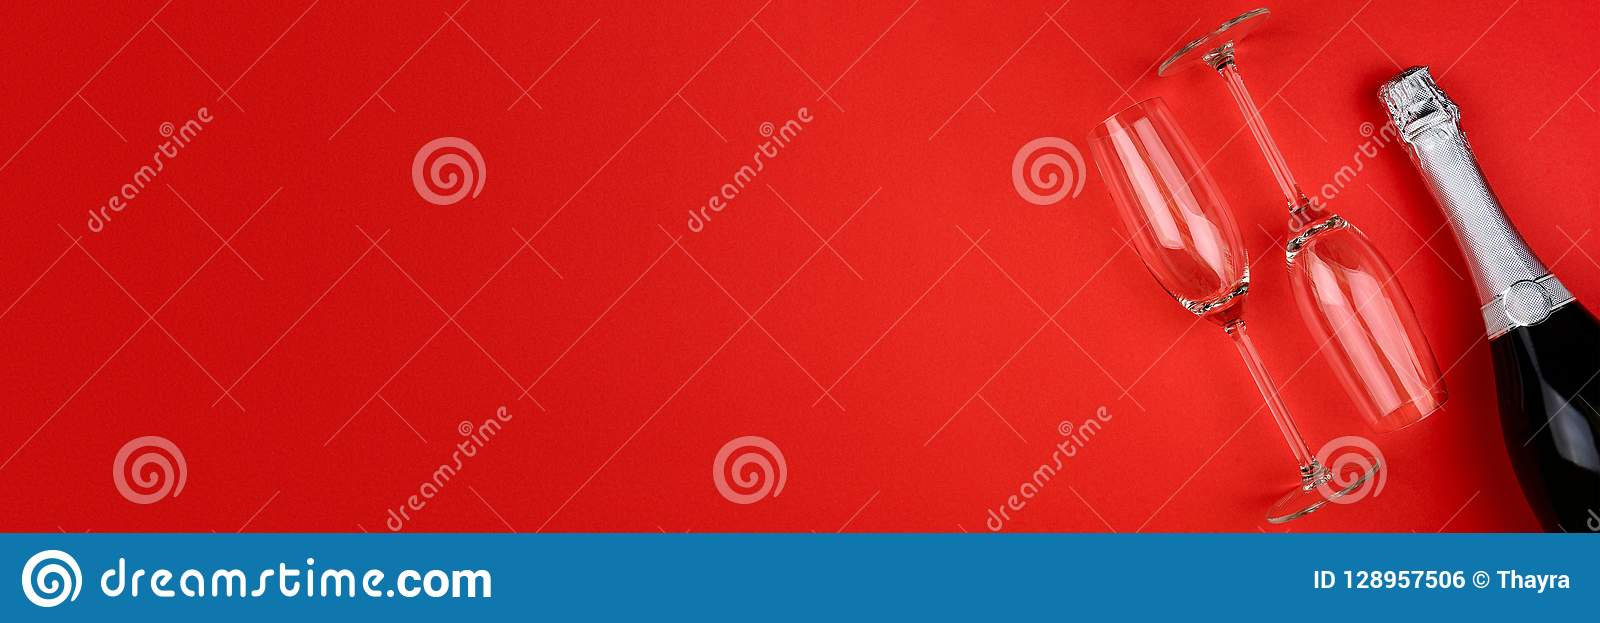 Banner 3:1 for Web. Wineglasses and bottle of champagne lying on red paper background. New Year celebration concept.